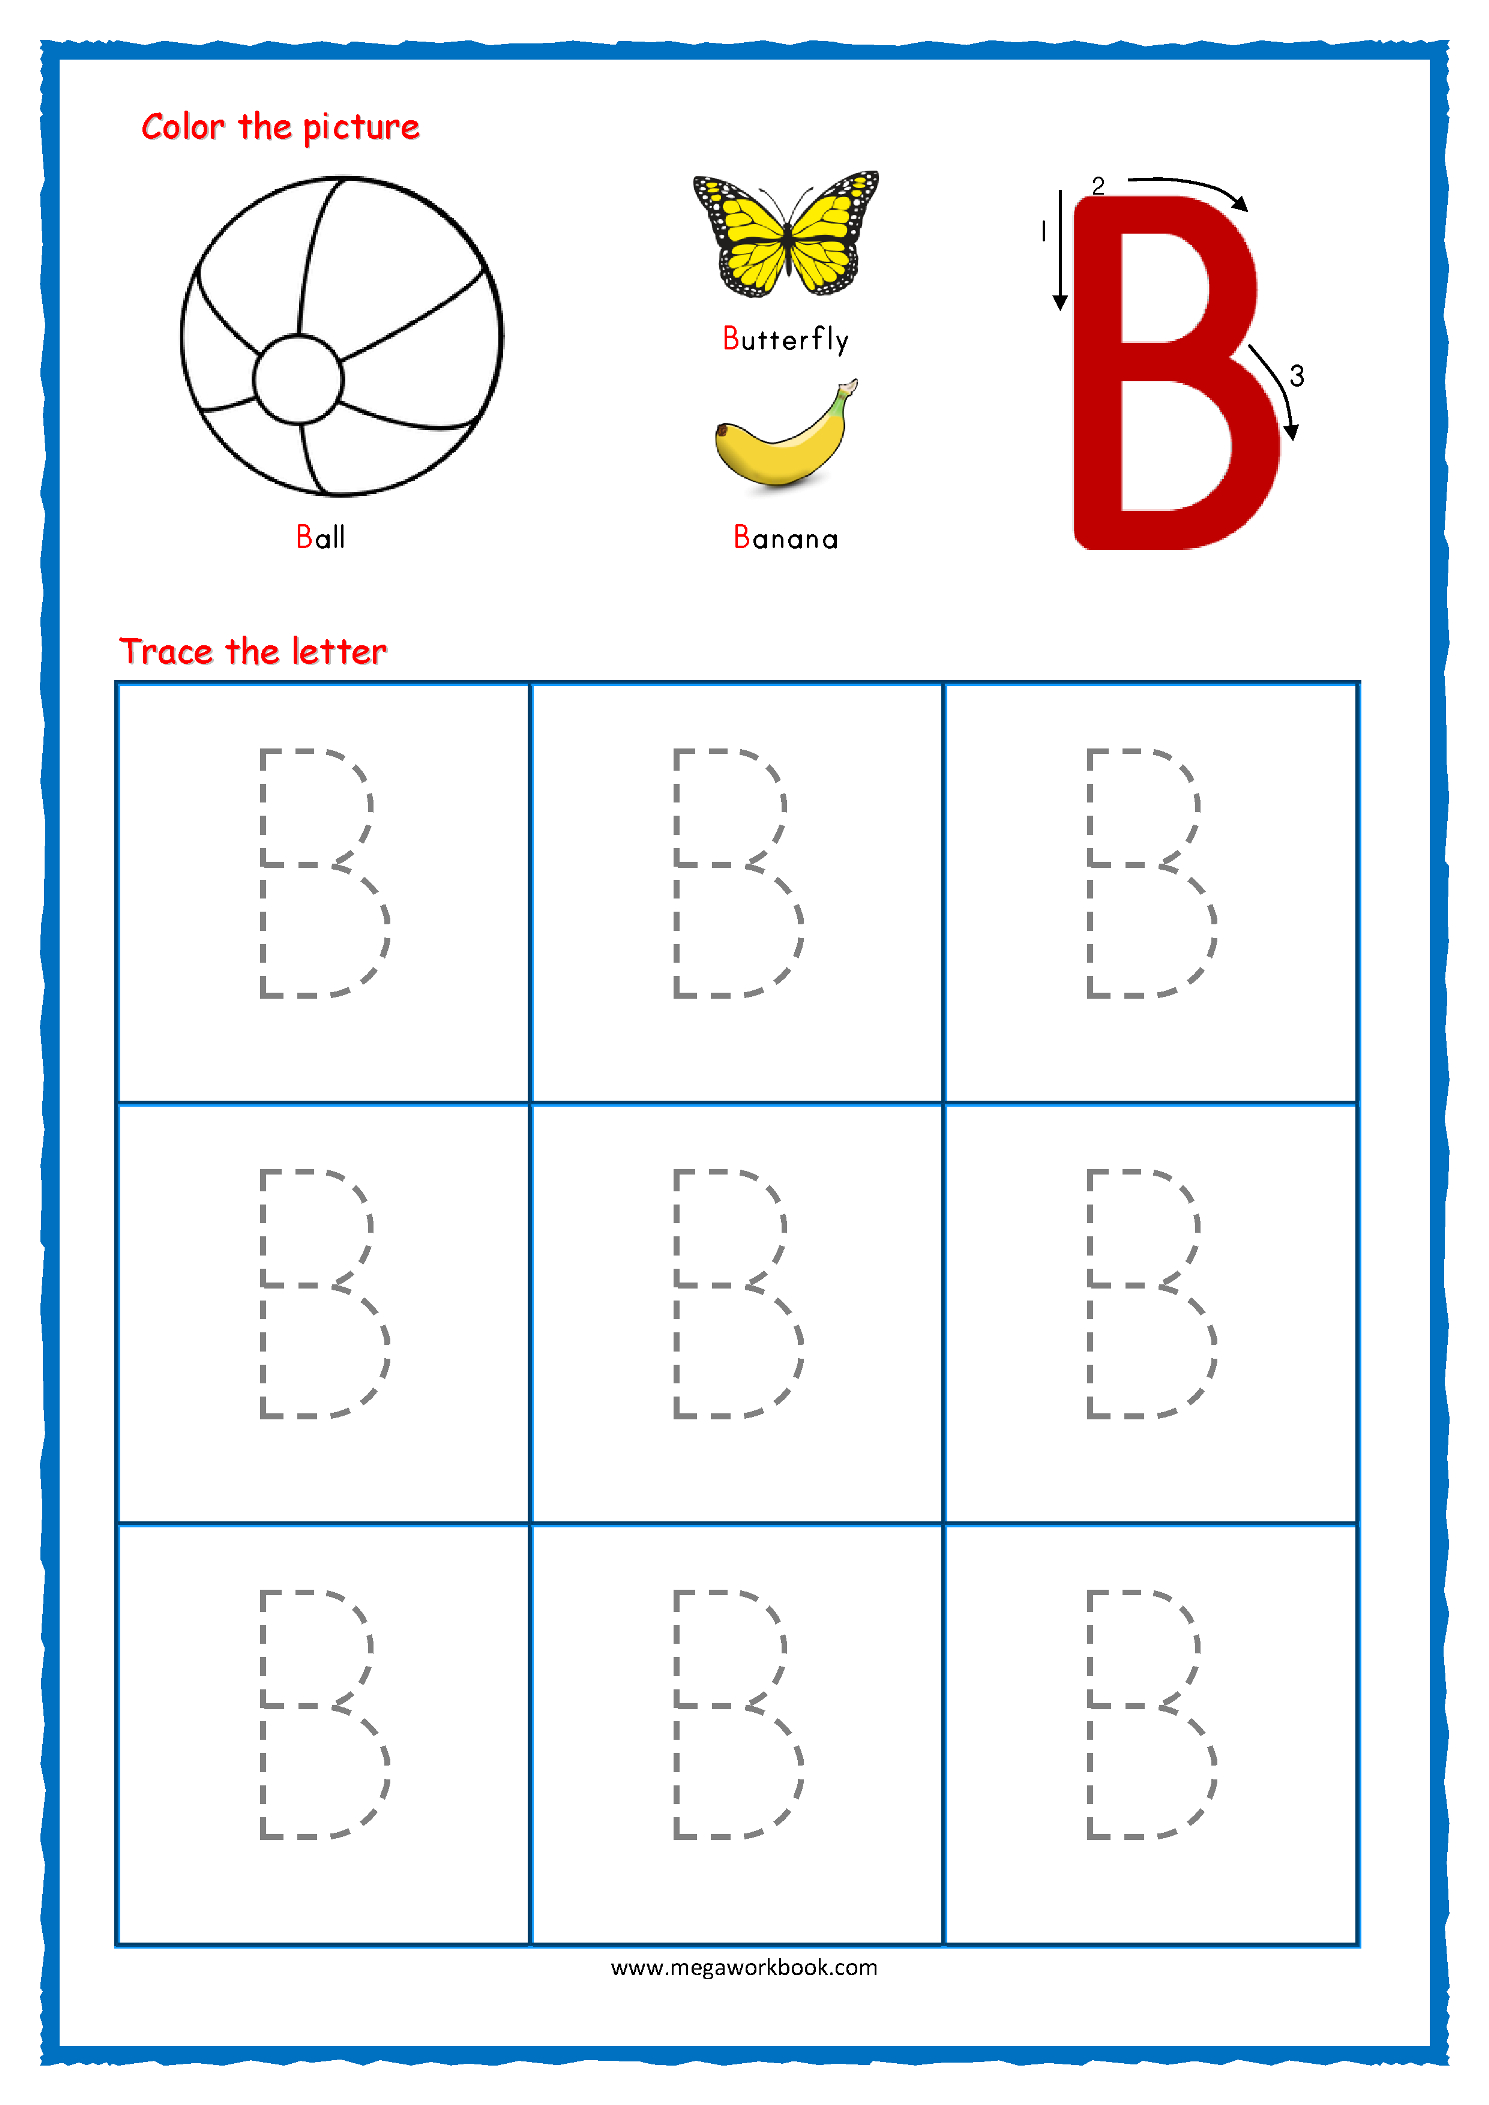 Tracing Letters - Alphabet Tracing - Capital Letters pertaining to Alphabet Tracing Order